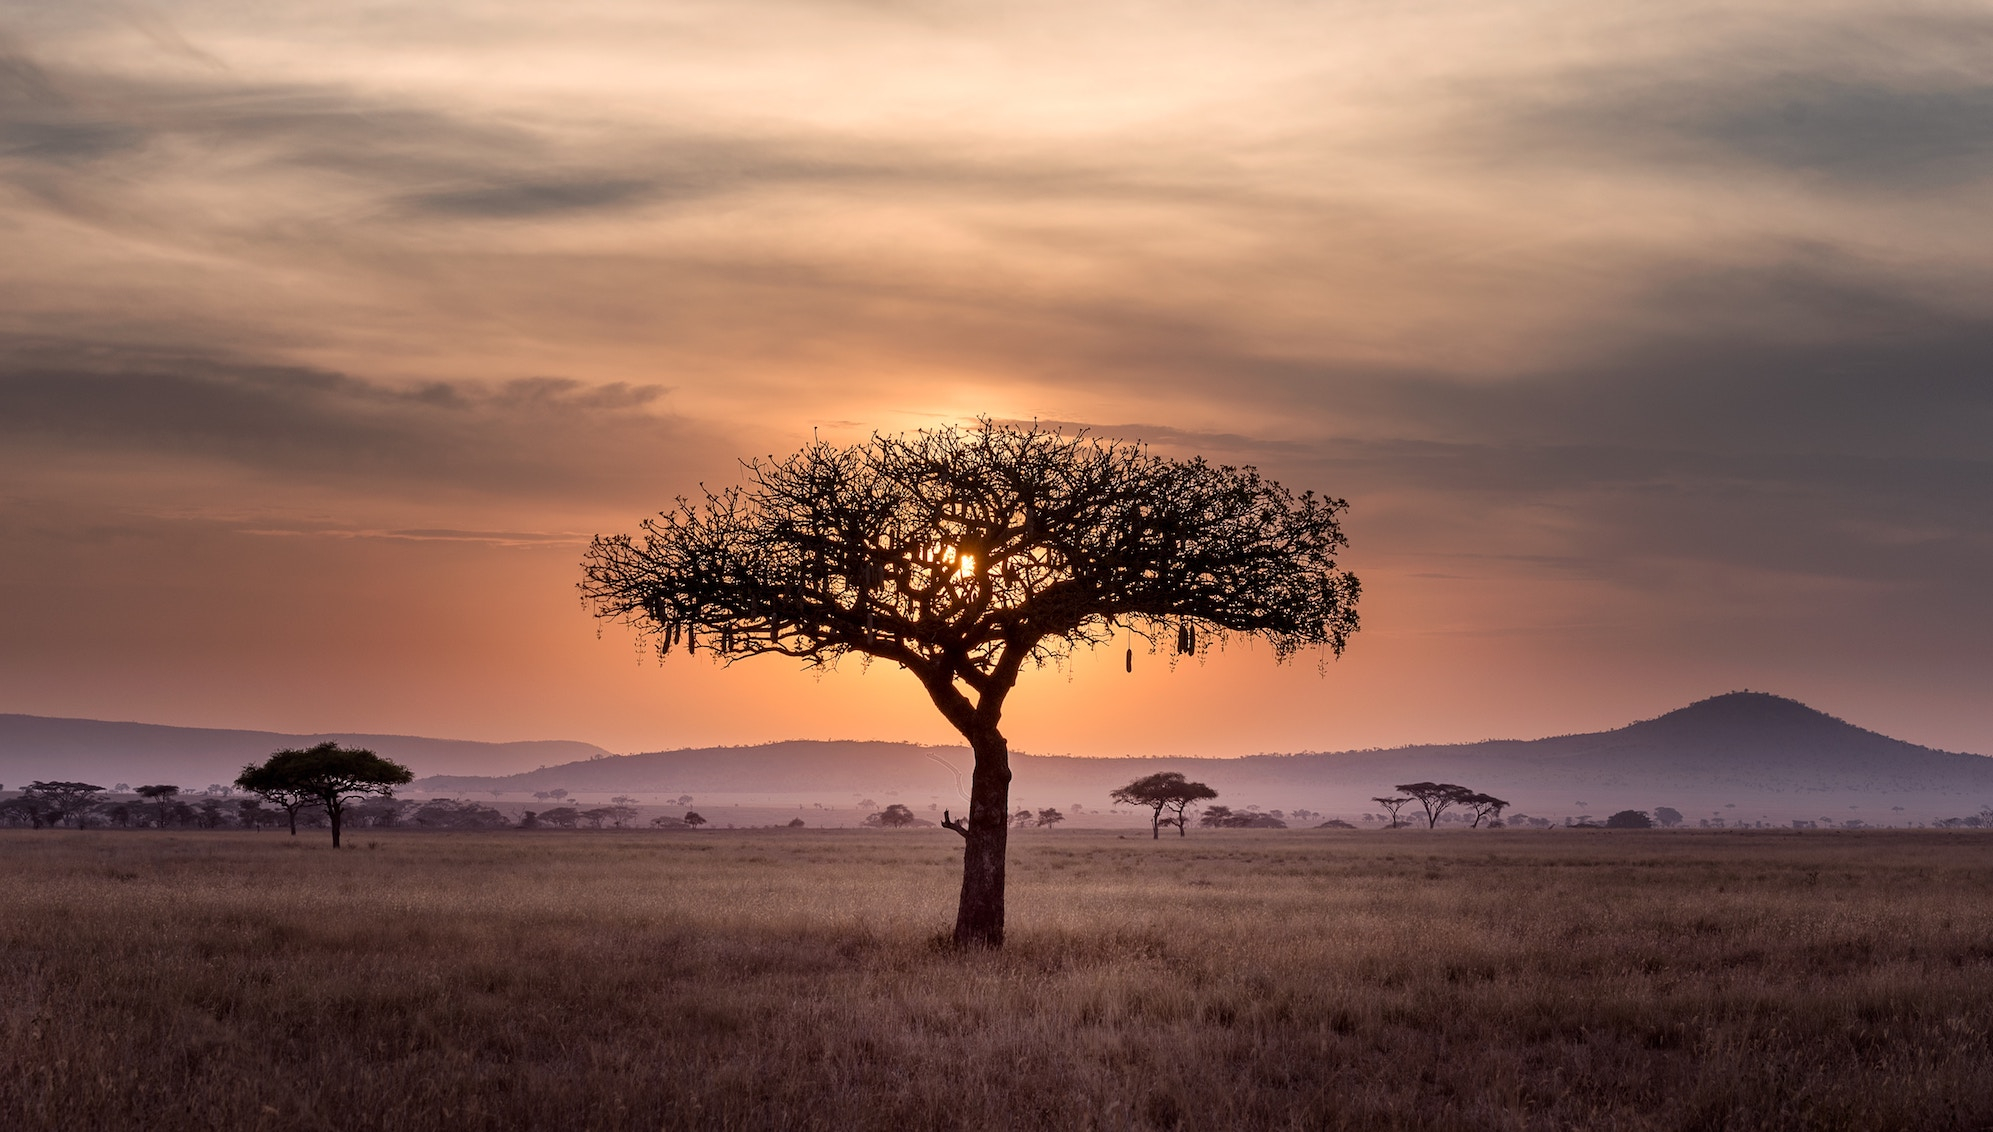 A single tree silhouetted against the sunset in Tanzania